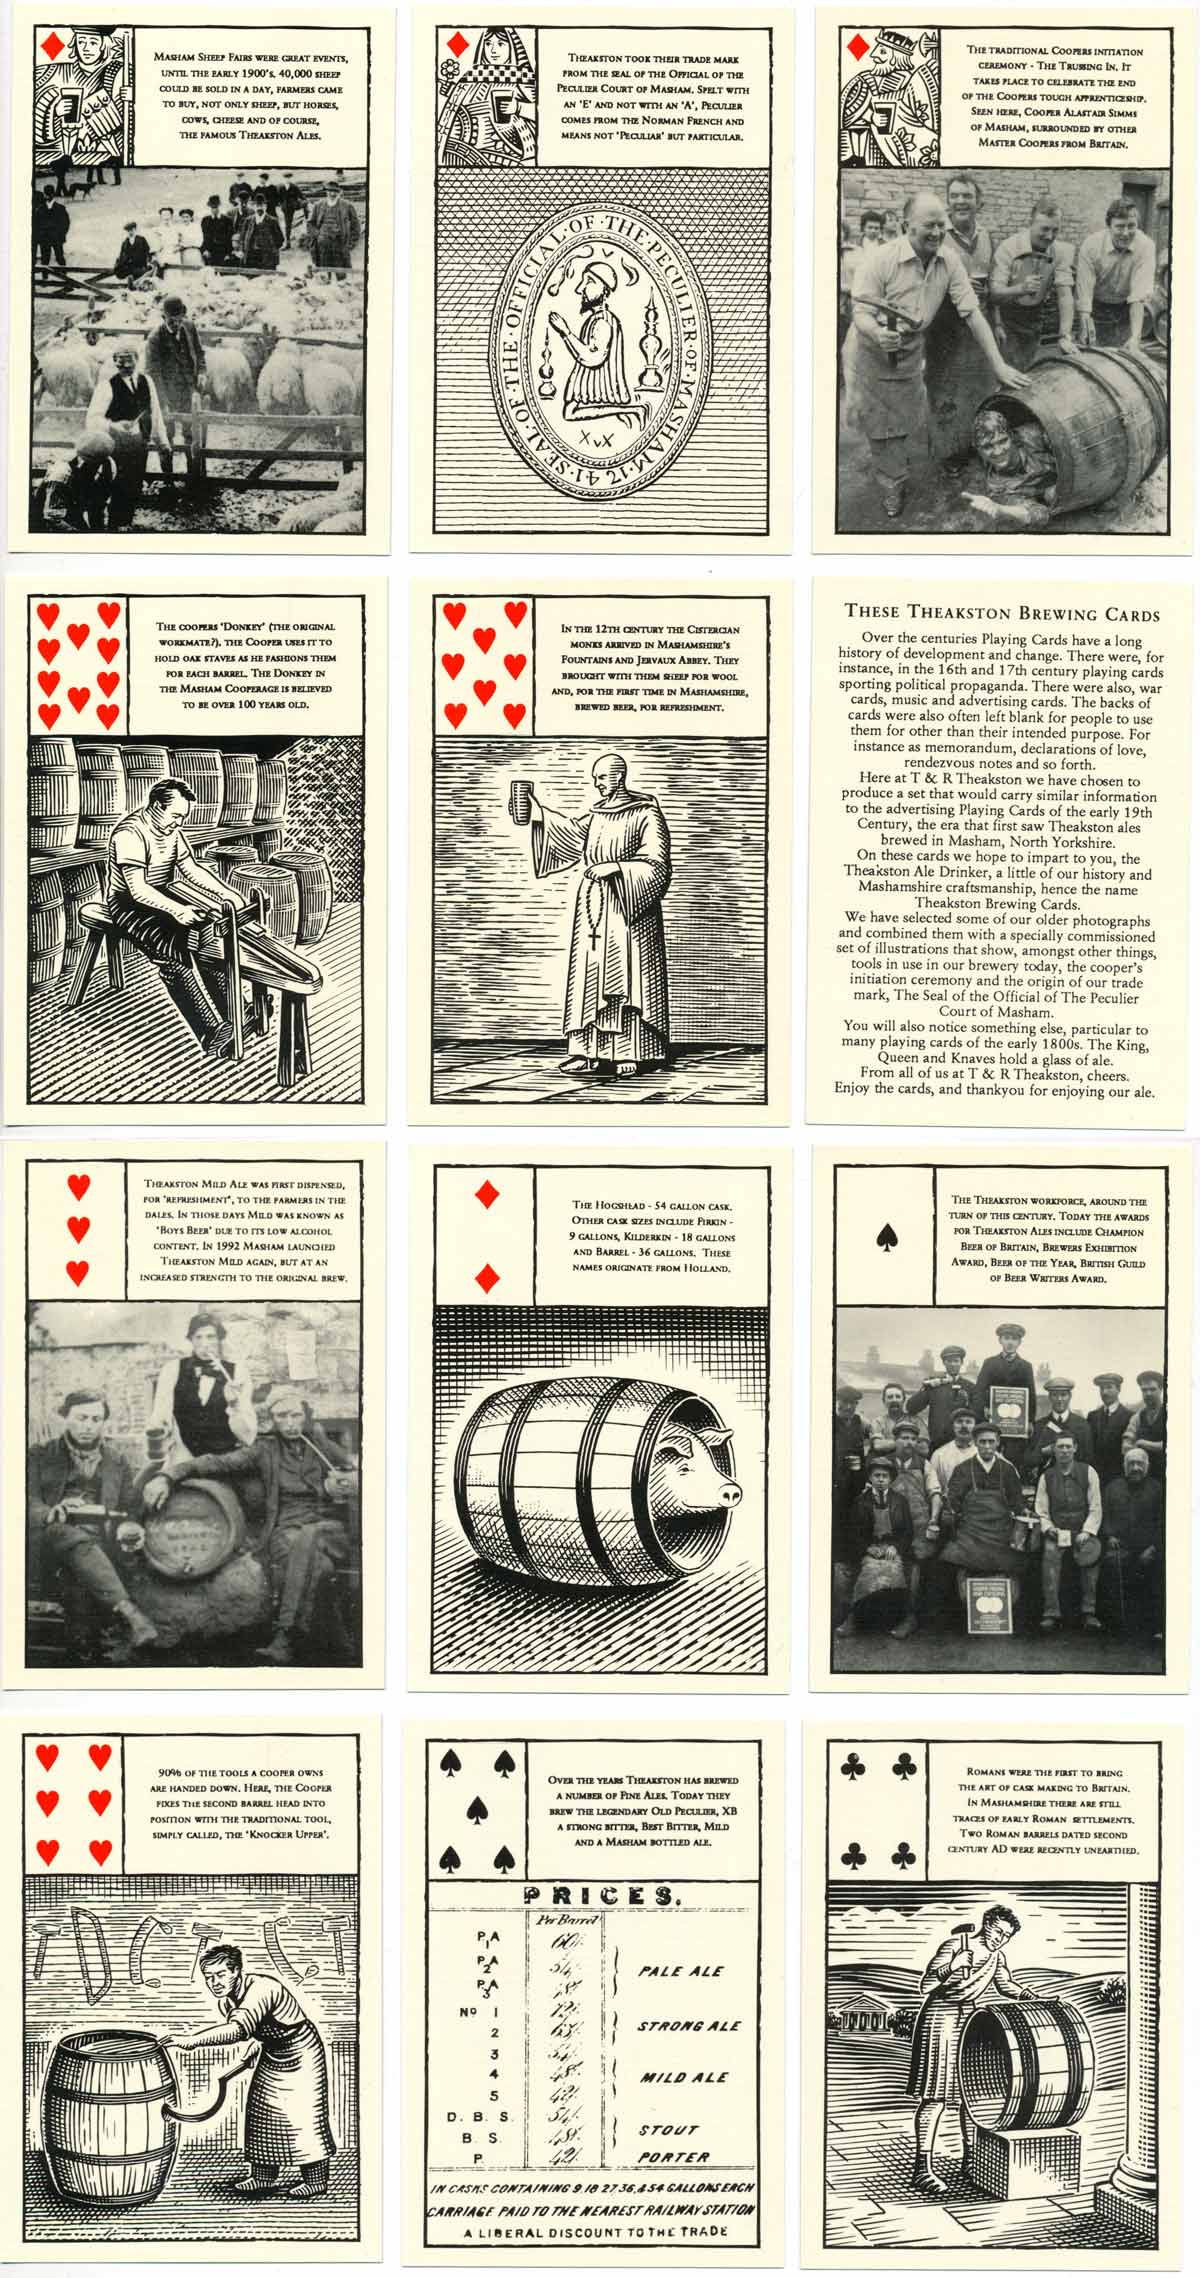 Theakston Brewery playing cards, 1990s